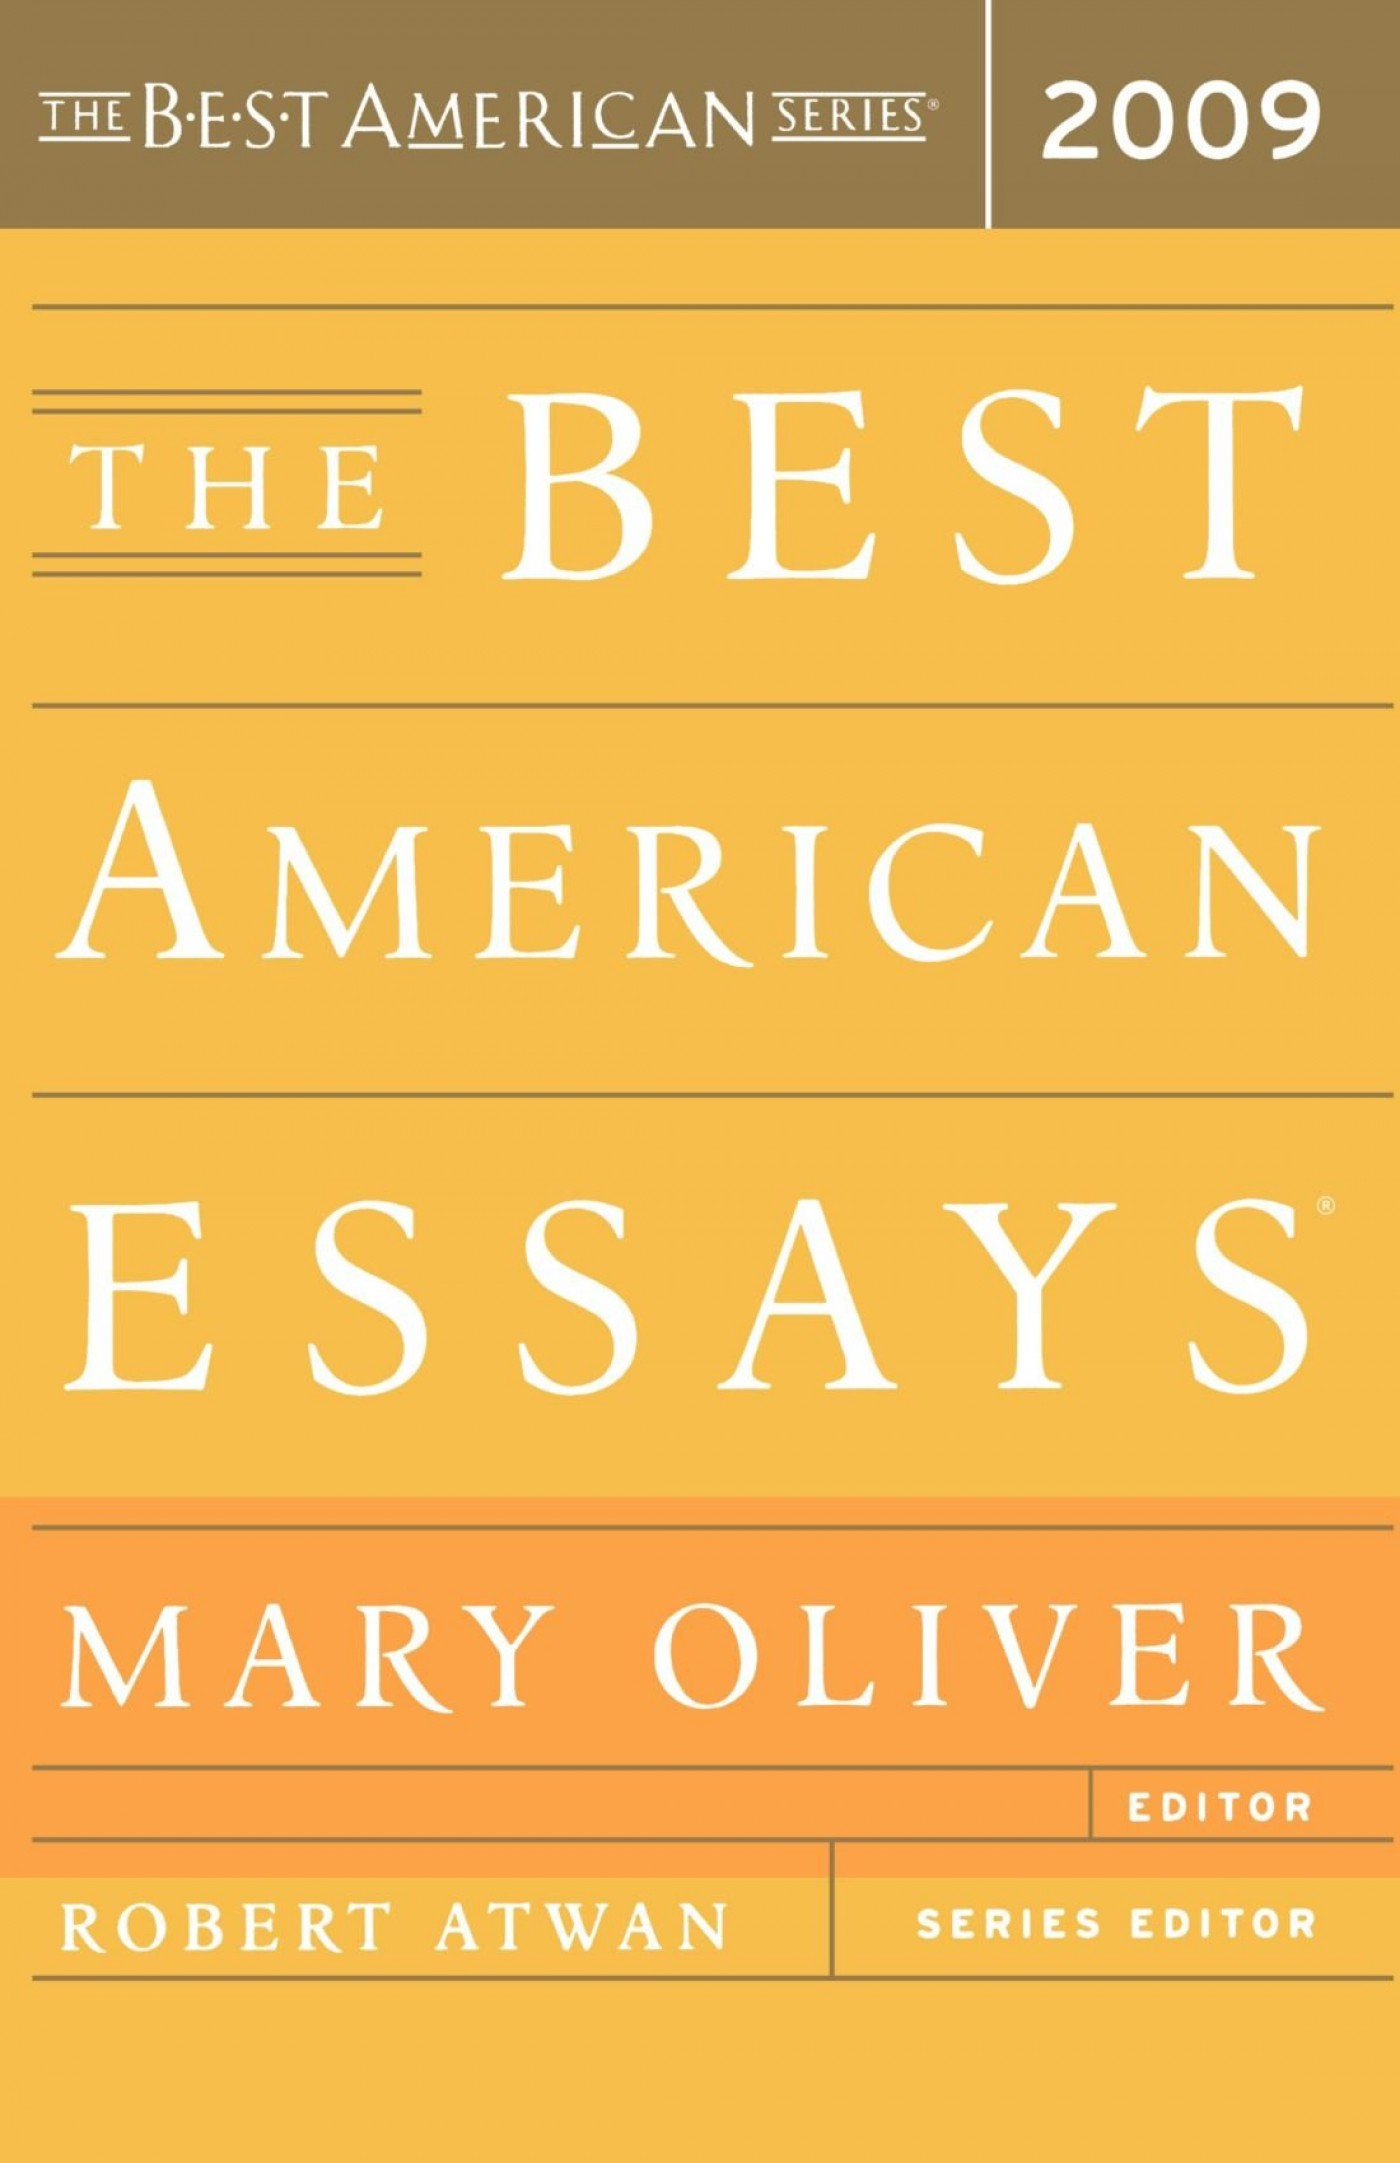 008 617qb5slhfl Essay Example The Best American Wonderful Essays 2018 Pdf 2017 Table Of Contents 2015 Free 1400